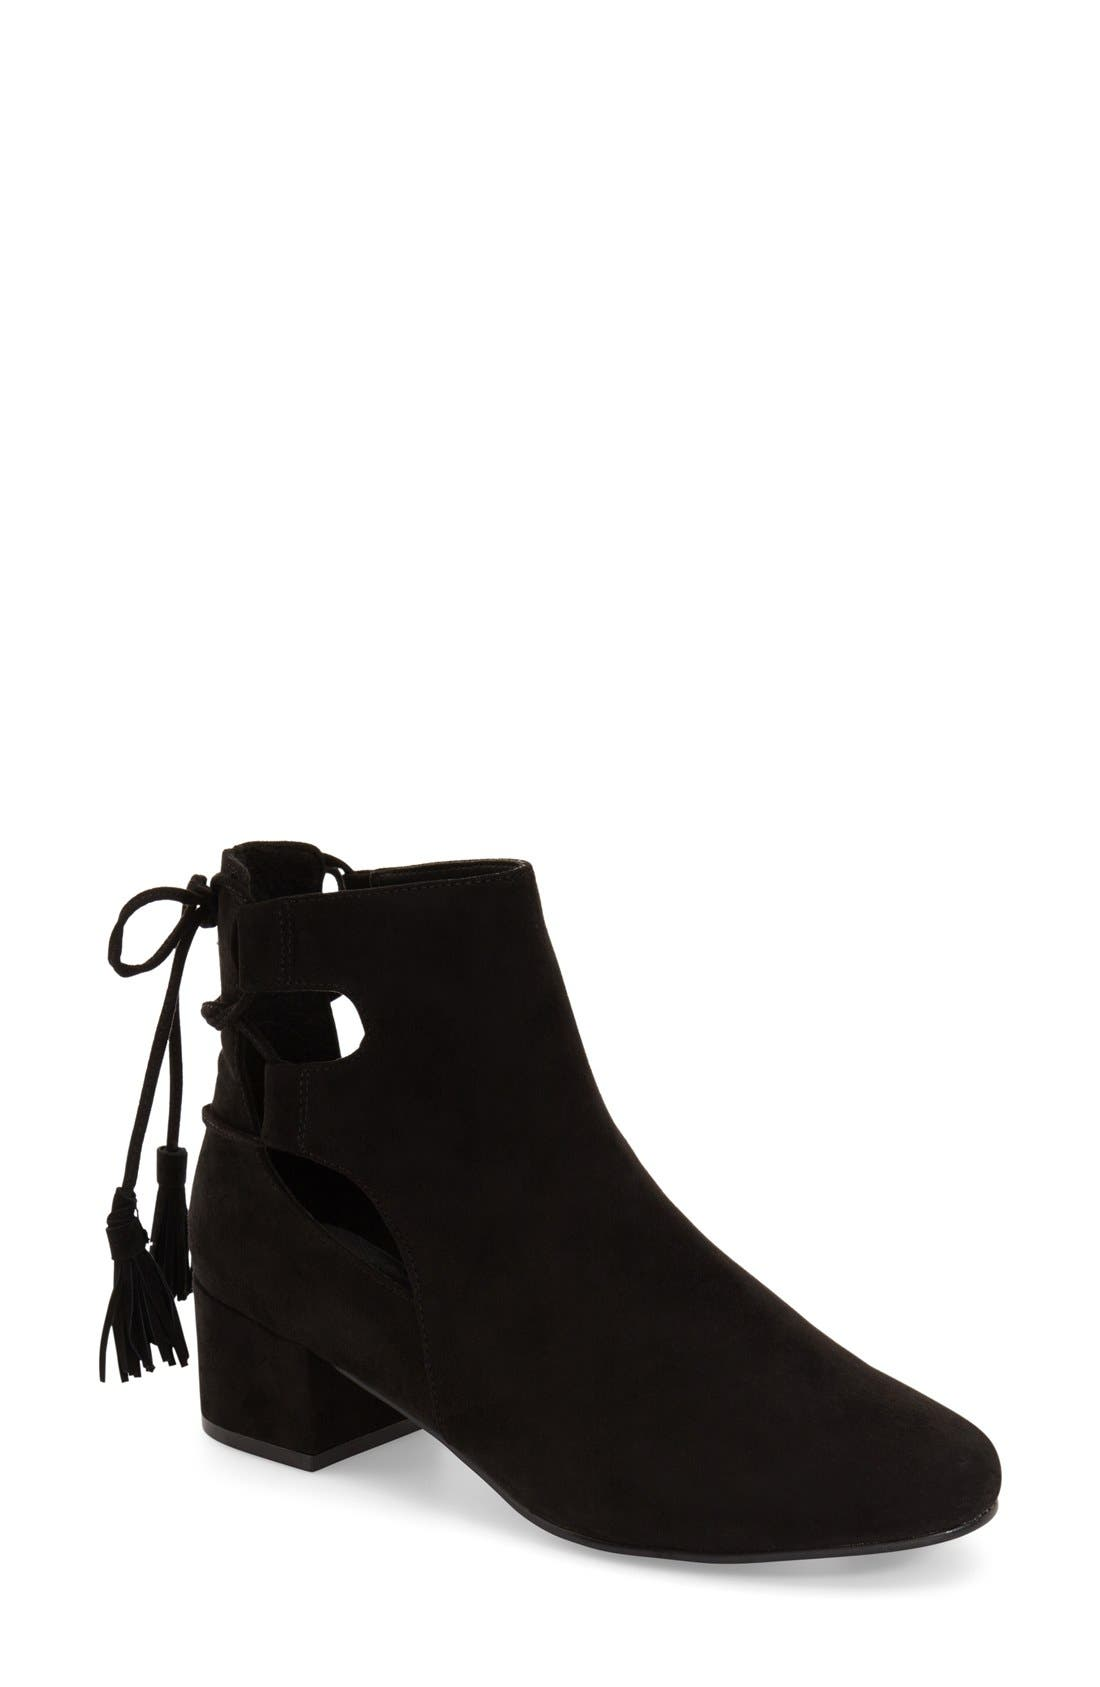 TOPSHOP 'Kimble' Lace-Up Suede Boot, Main, color, 001